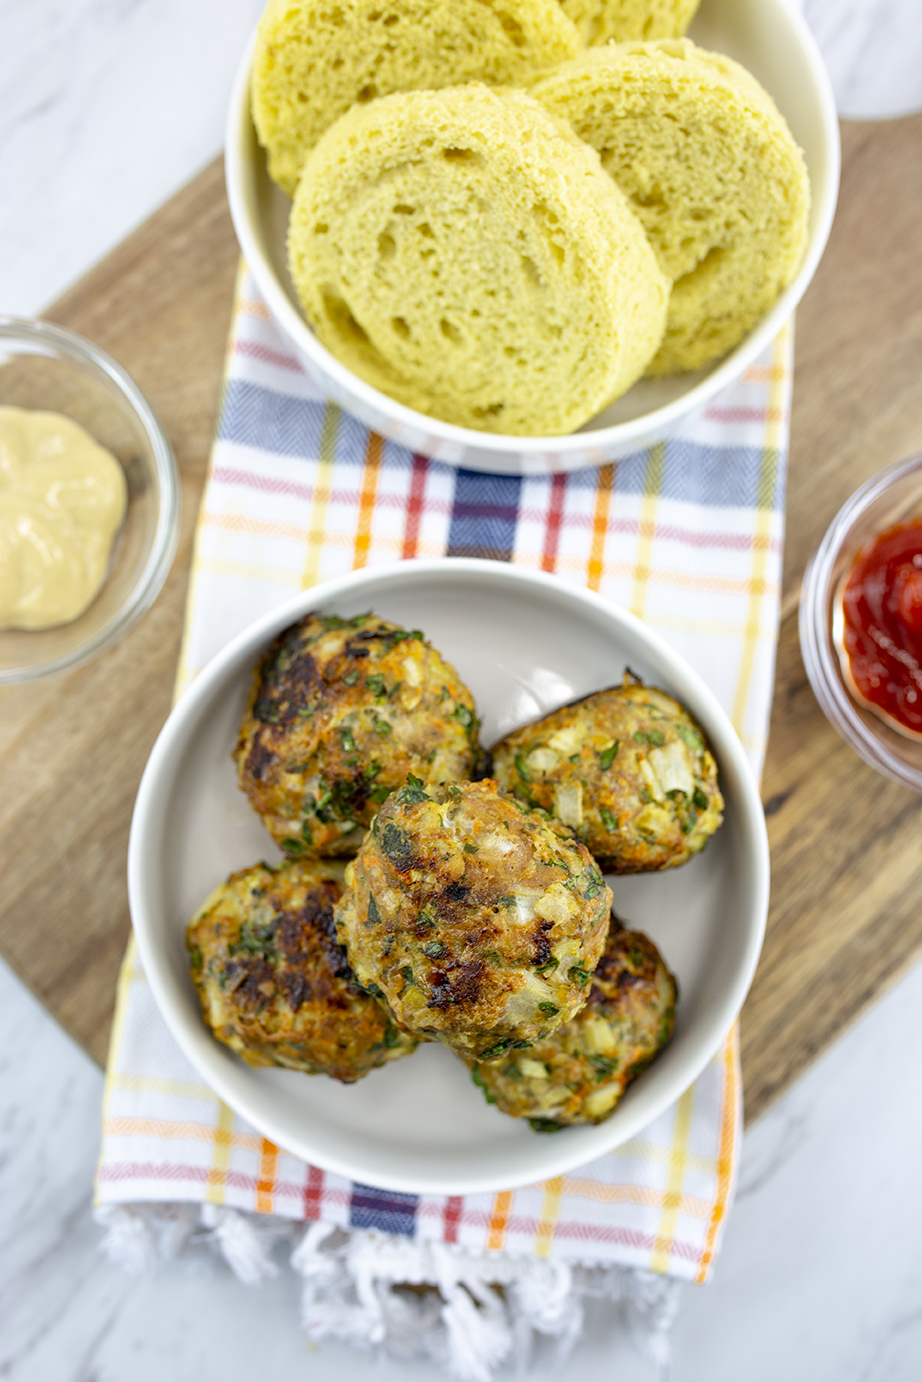 Low carb turkey meatballs served with keto bread, mustard and ketchup